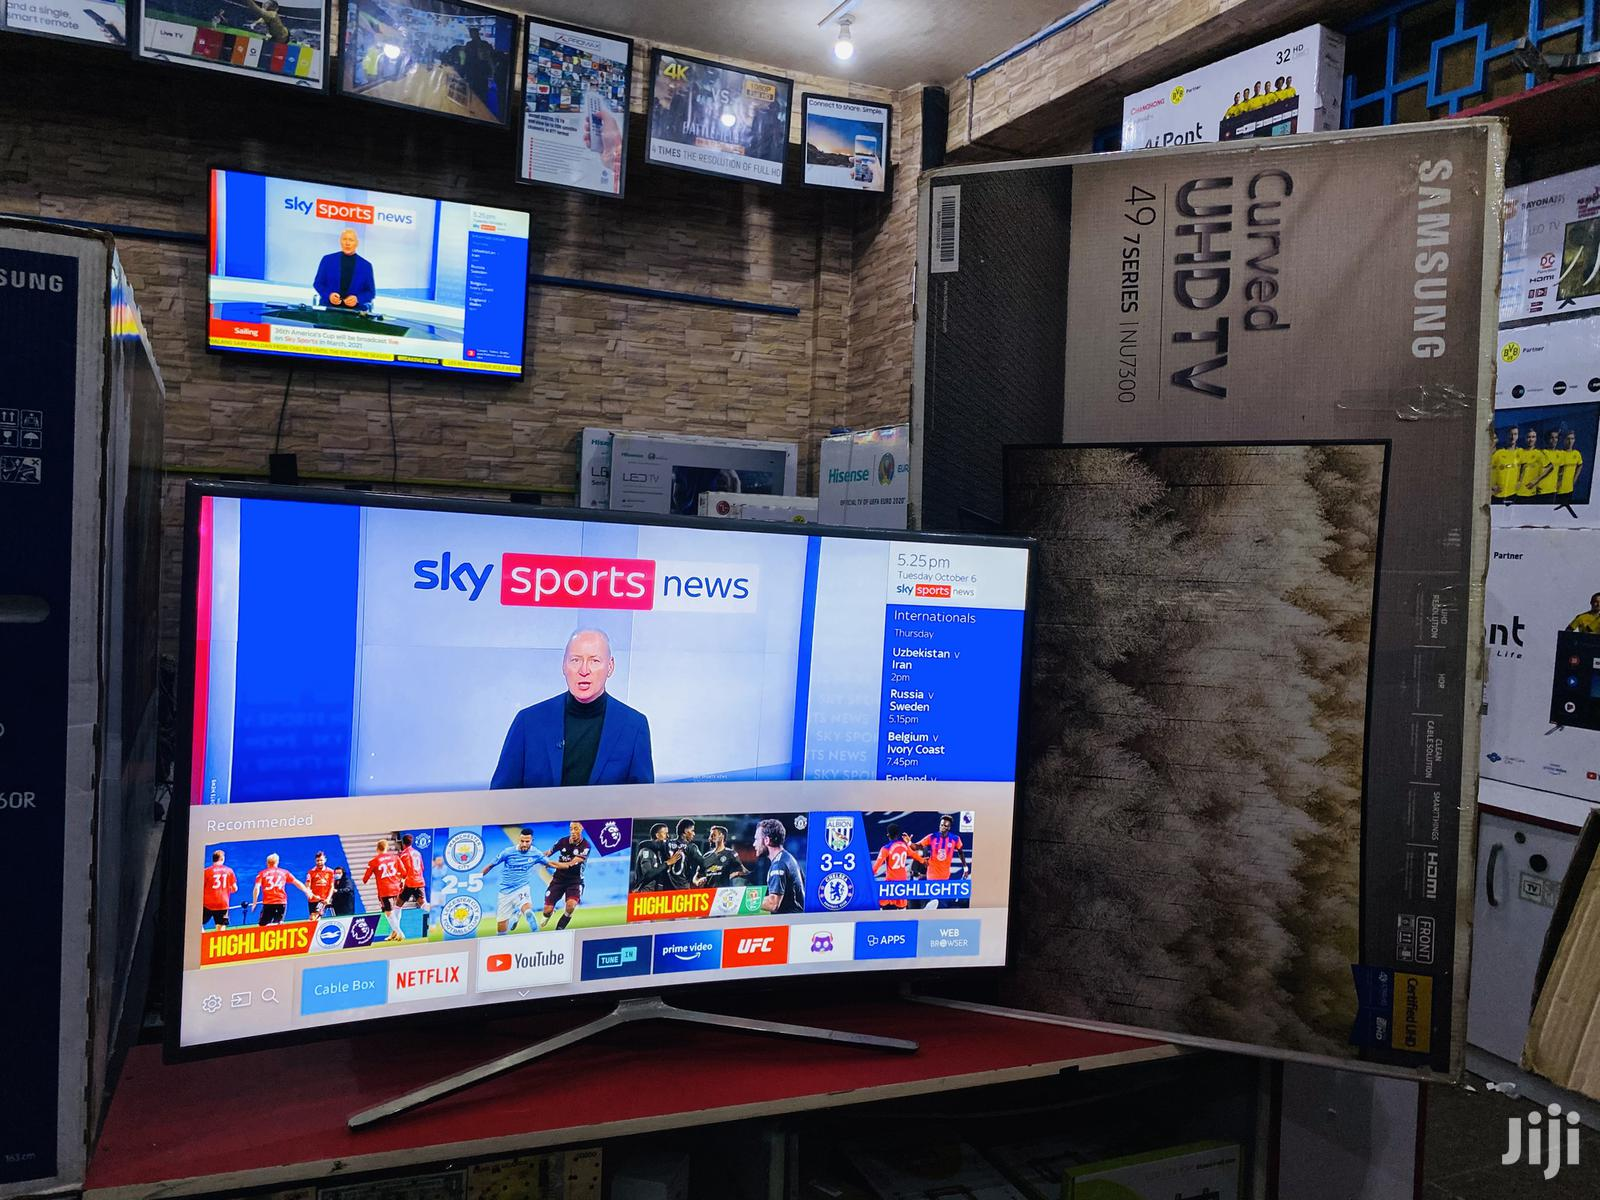 Samsung Curved Smart TV 49 Inches